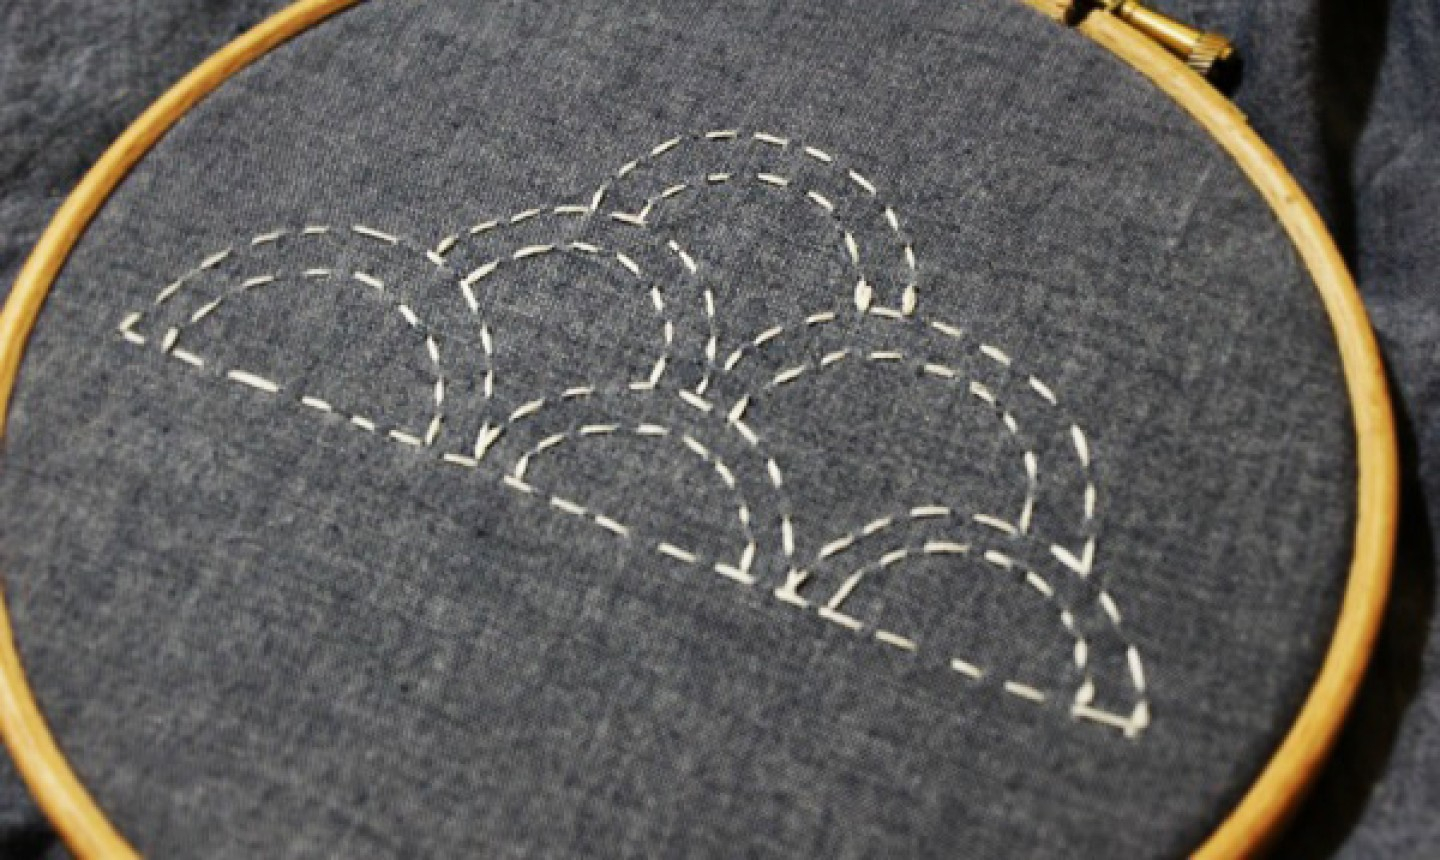 How To Make Hand Embroidery Patterns Learn Simple Sashiko Embroidery With This Whimsical Cloud Pattern